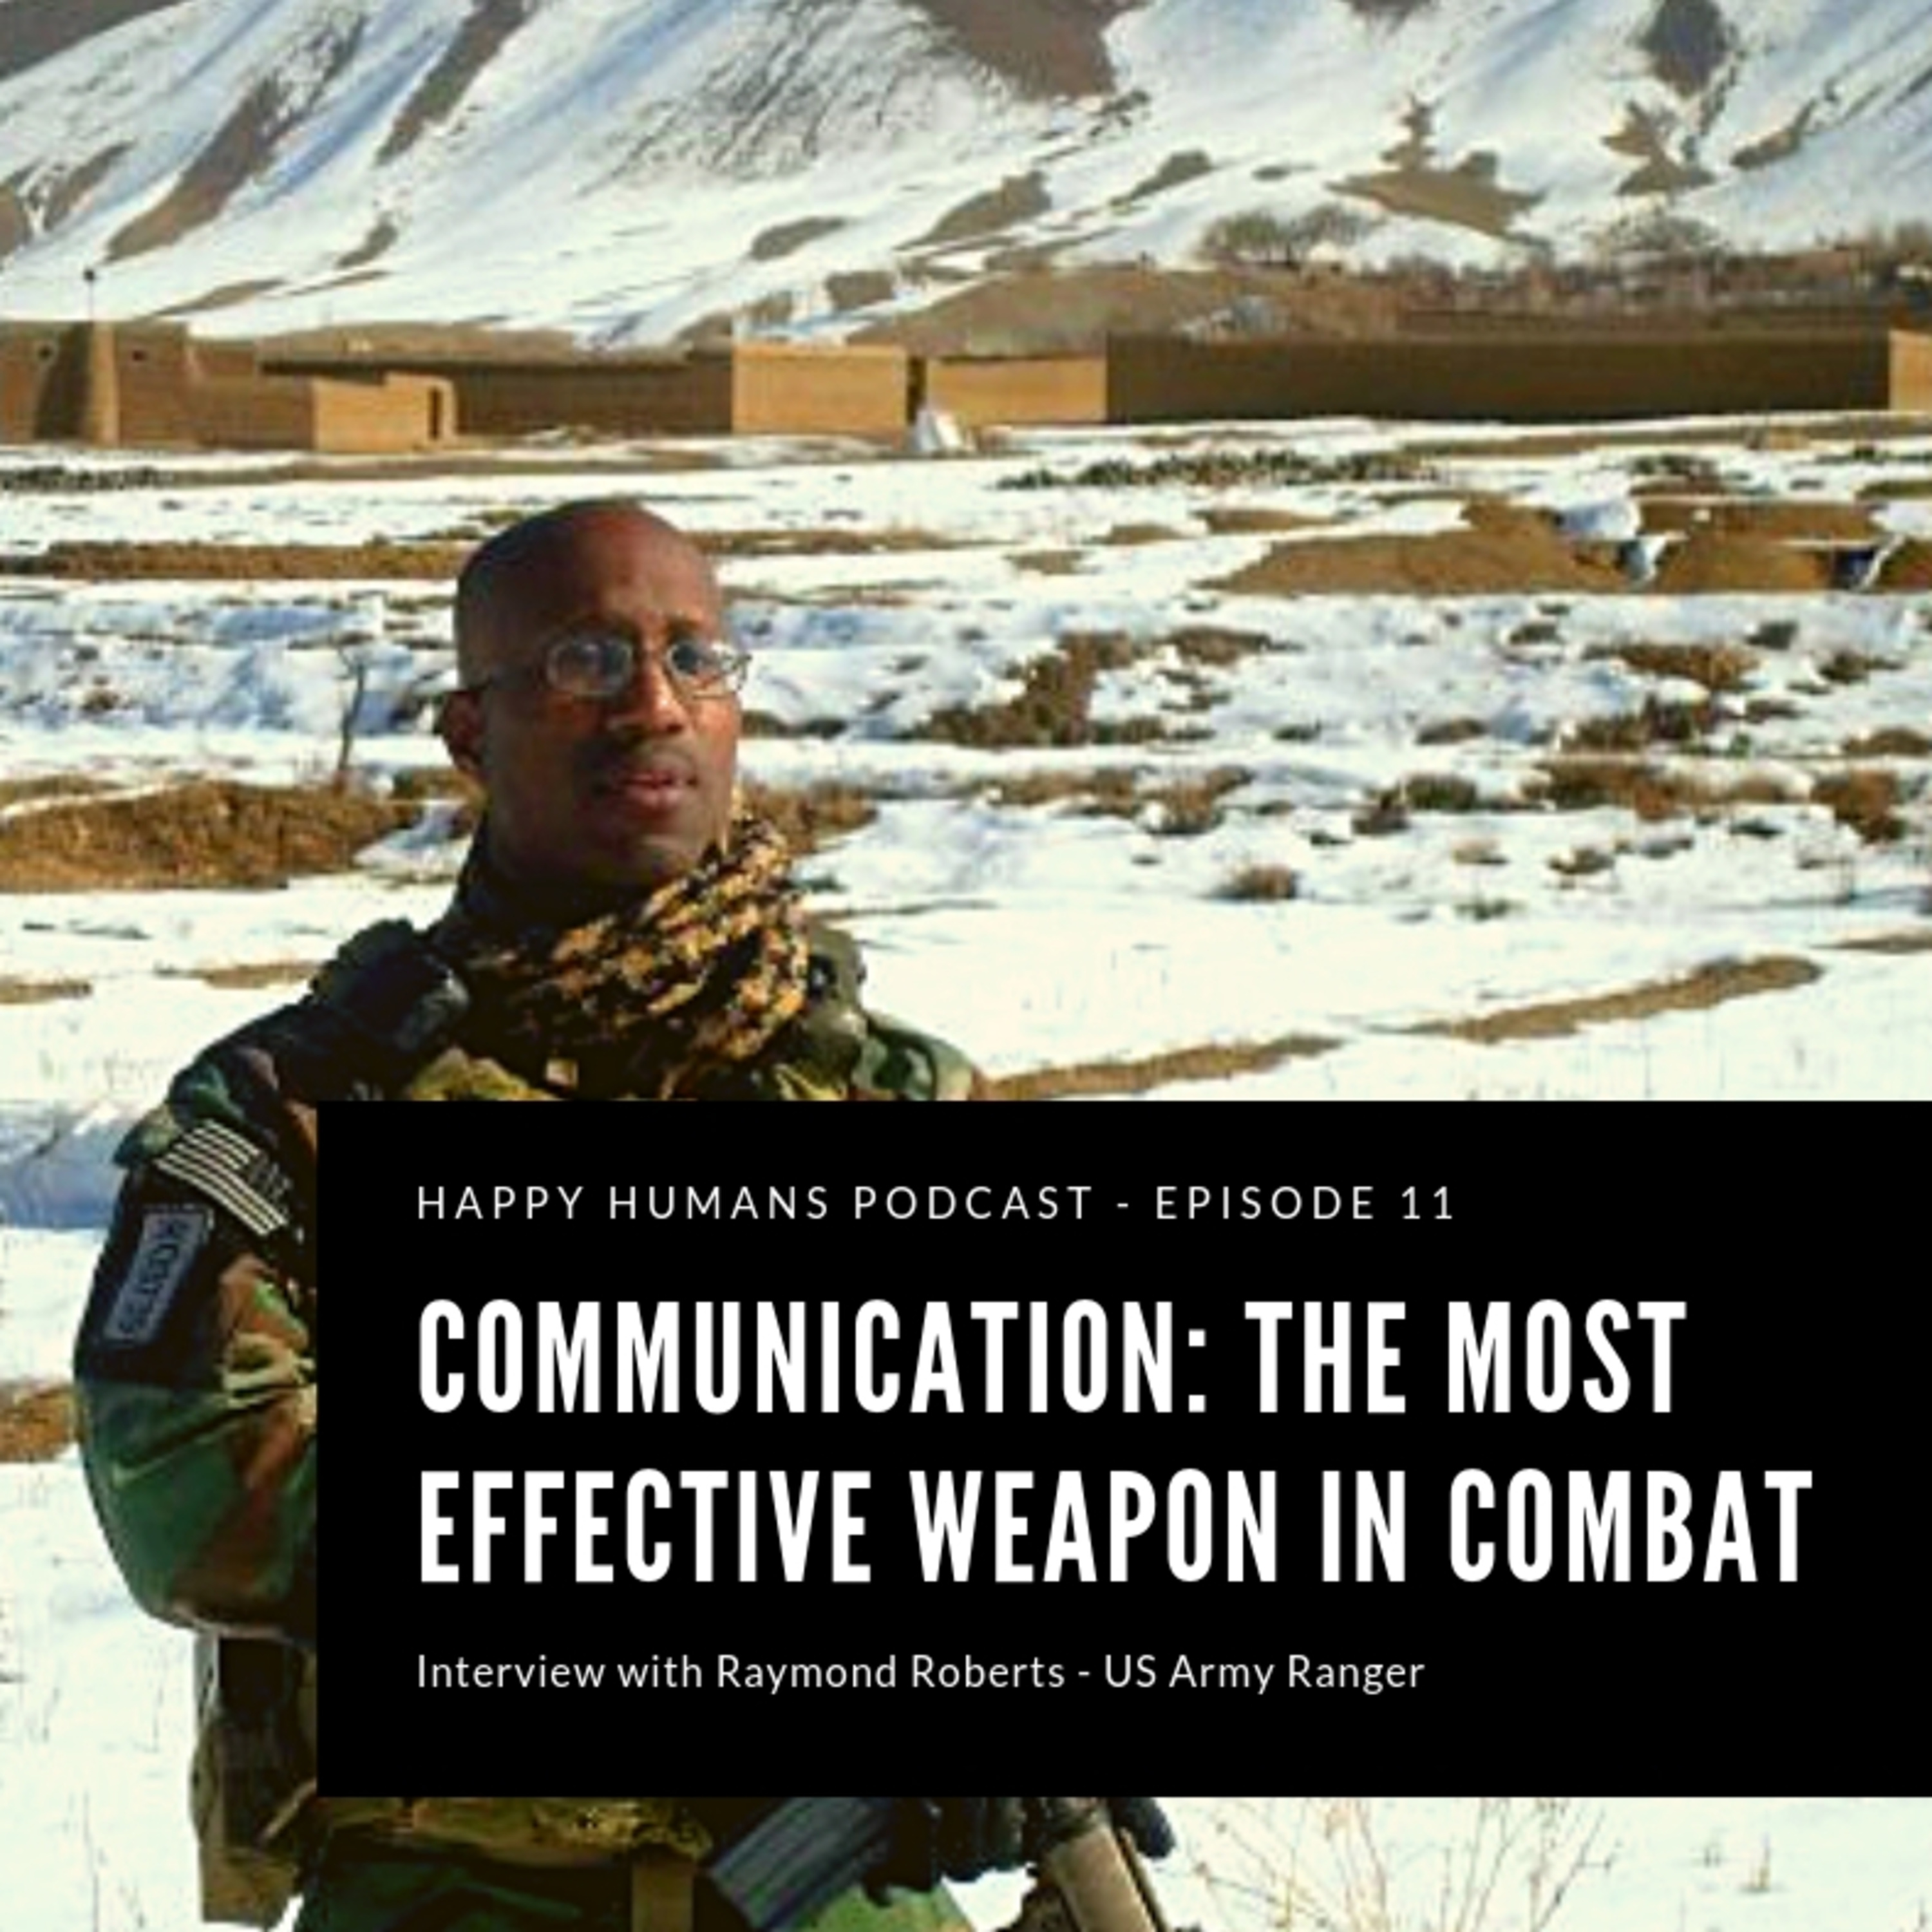 Episode 11 - Communication: The Most Effective Weapon in Combat